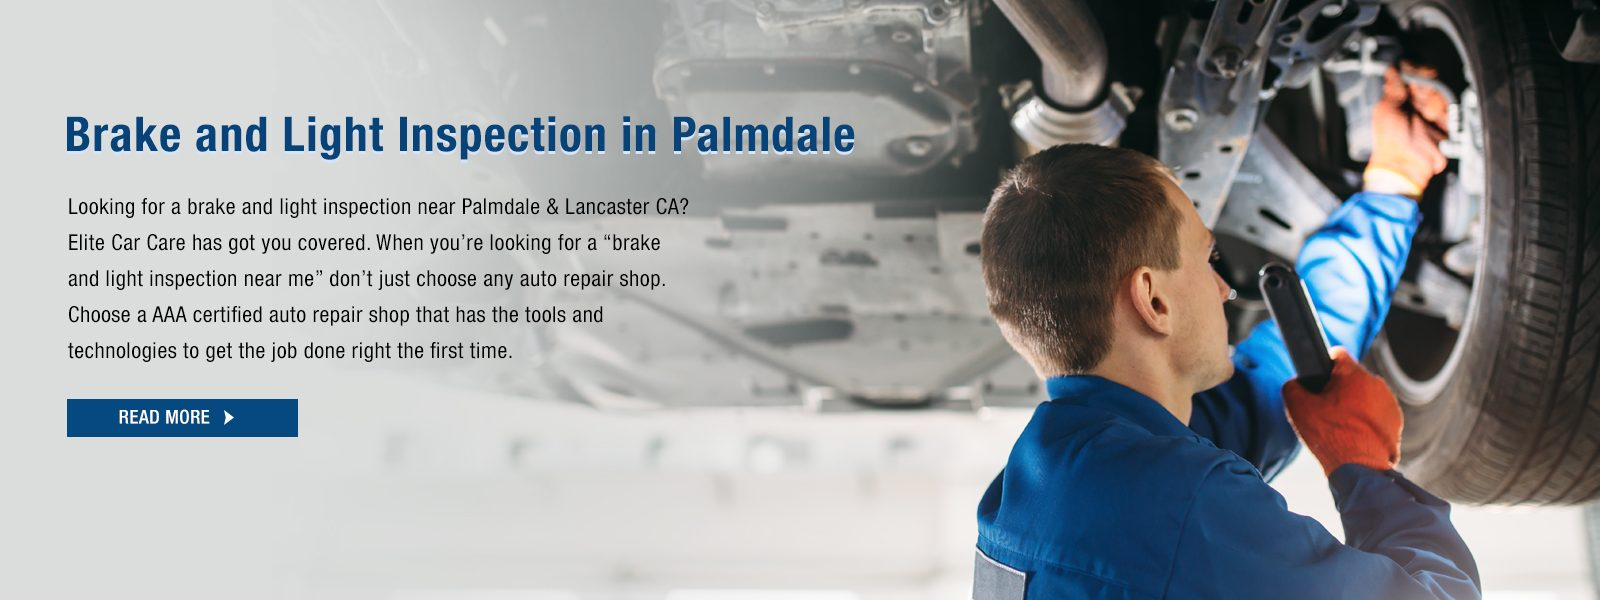 Brake and Light Inspection in Palmdale